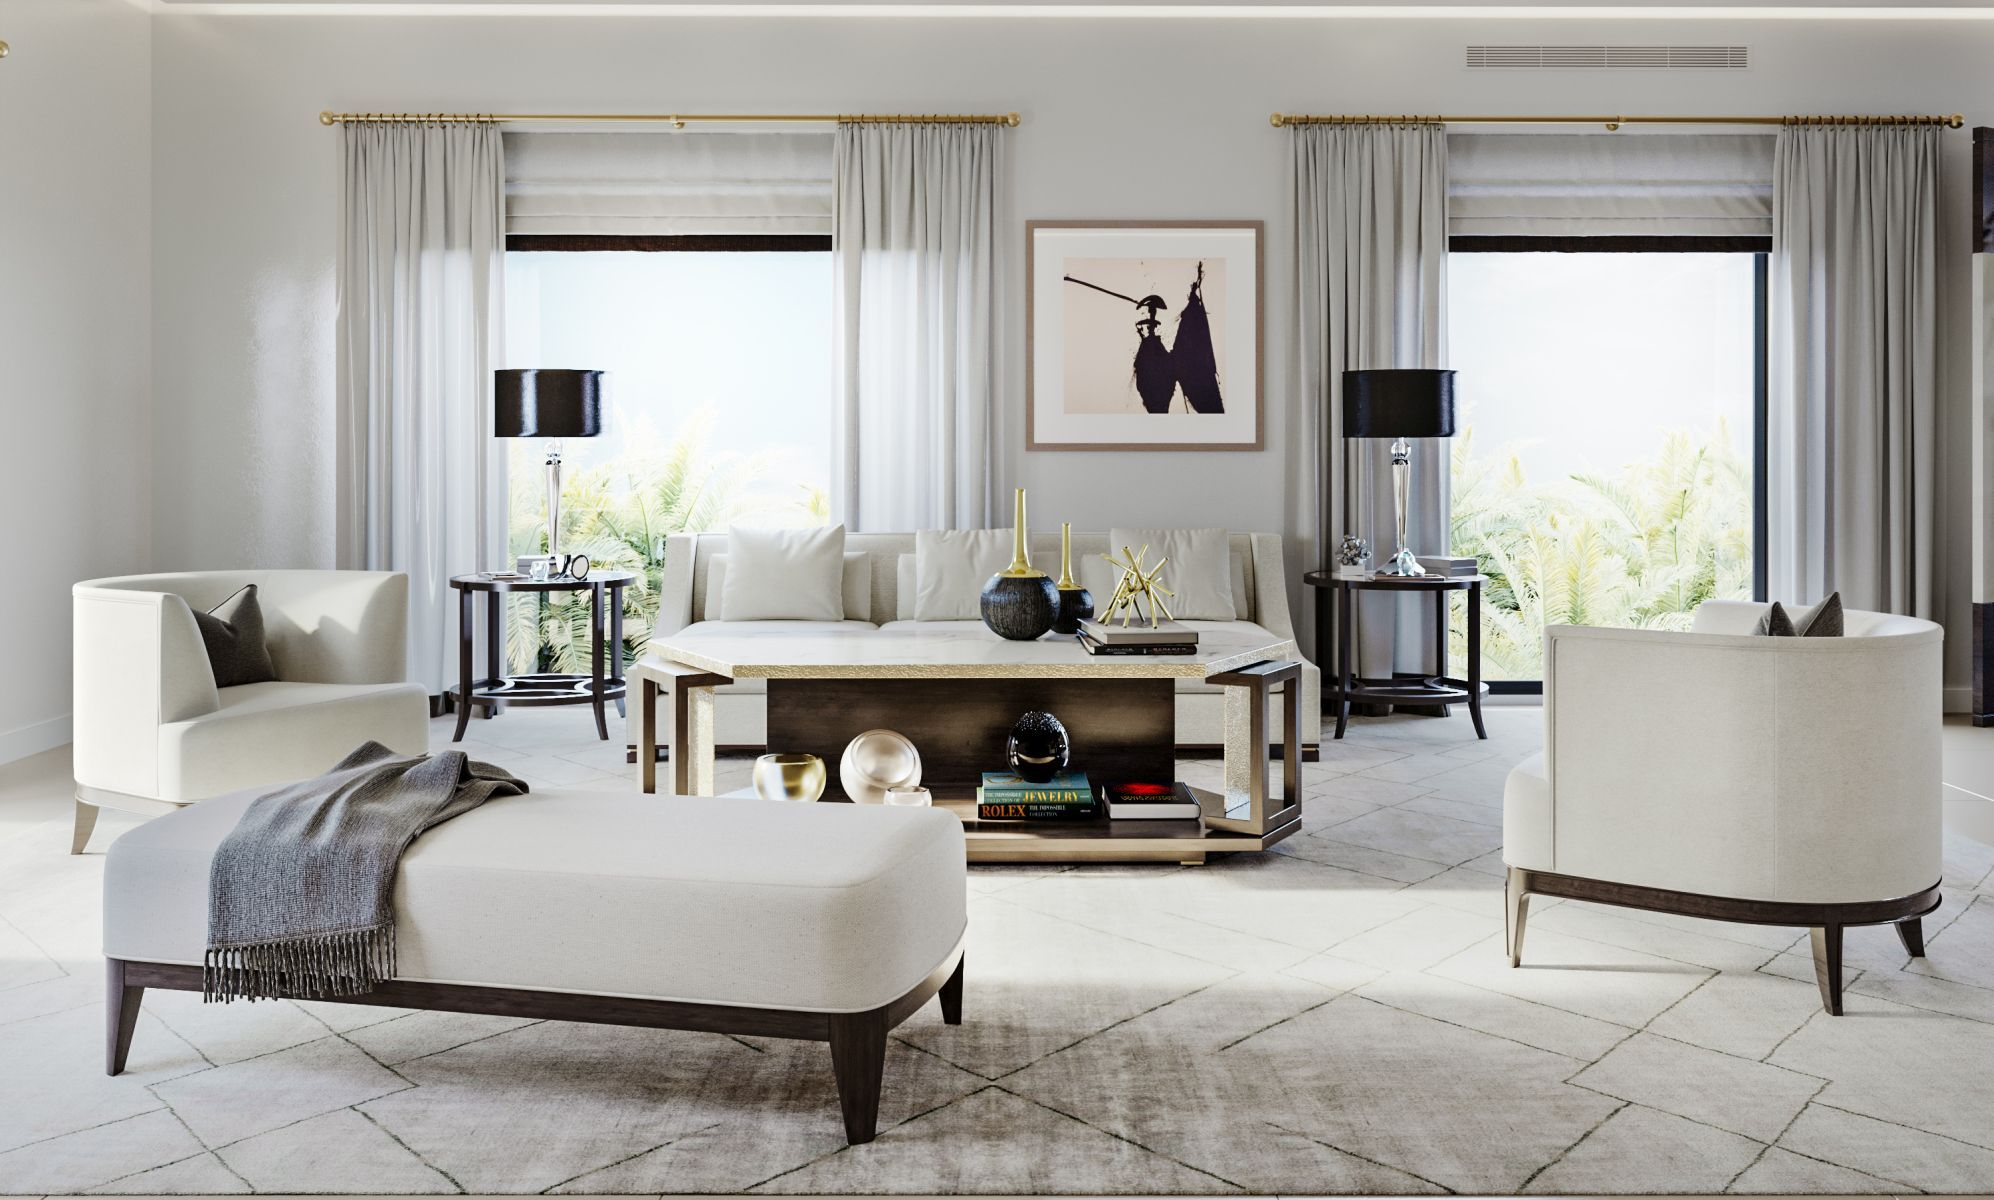 Mobilier Shepel - Living Natalie sofa & Billy Chairs